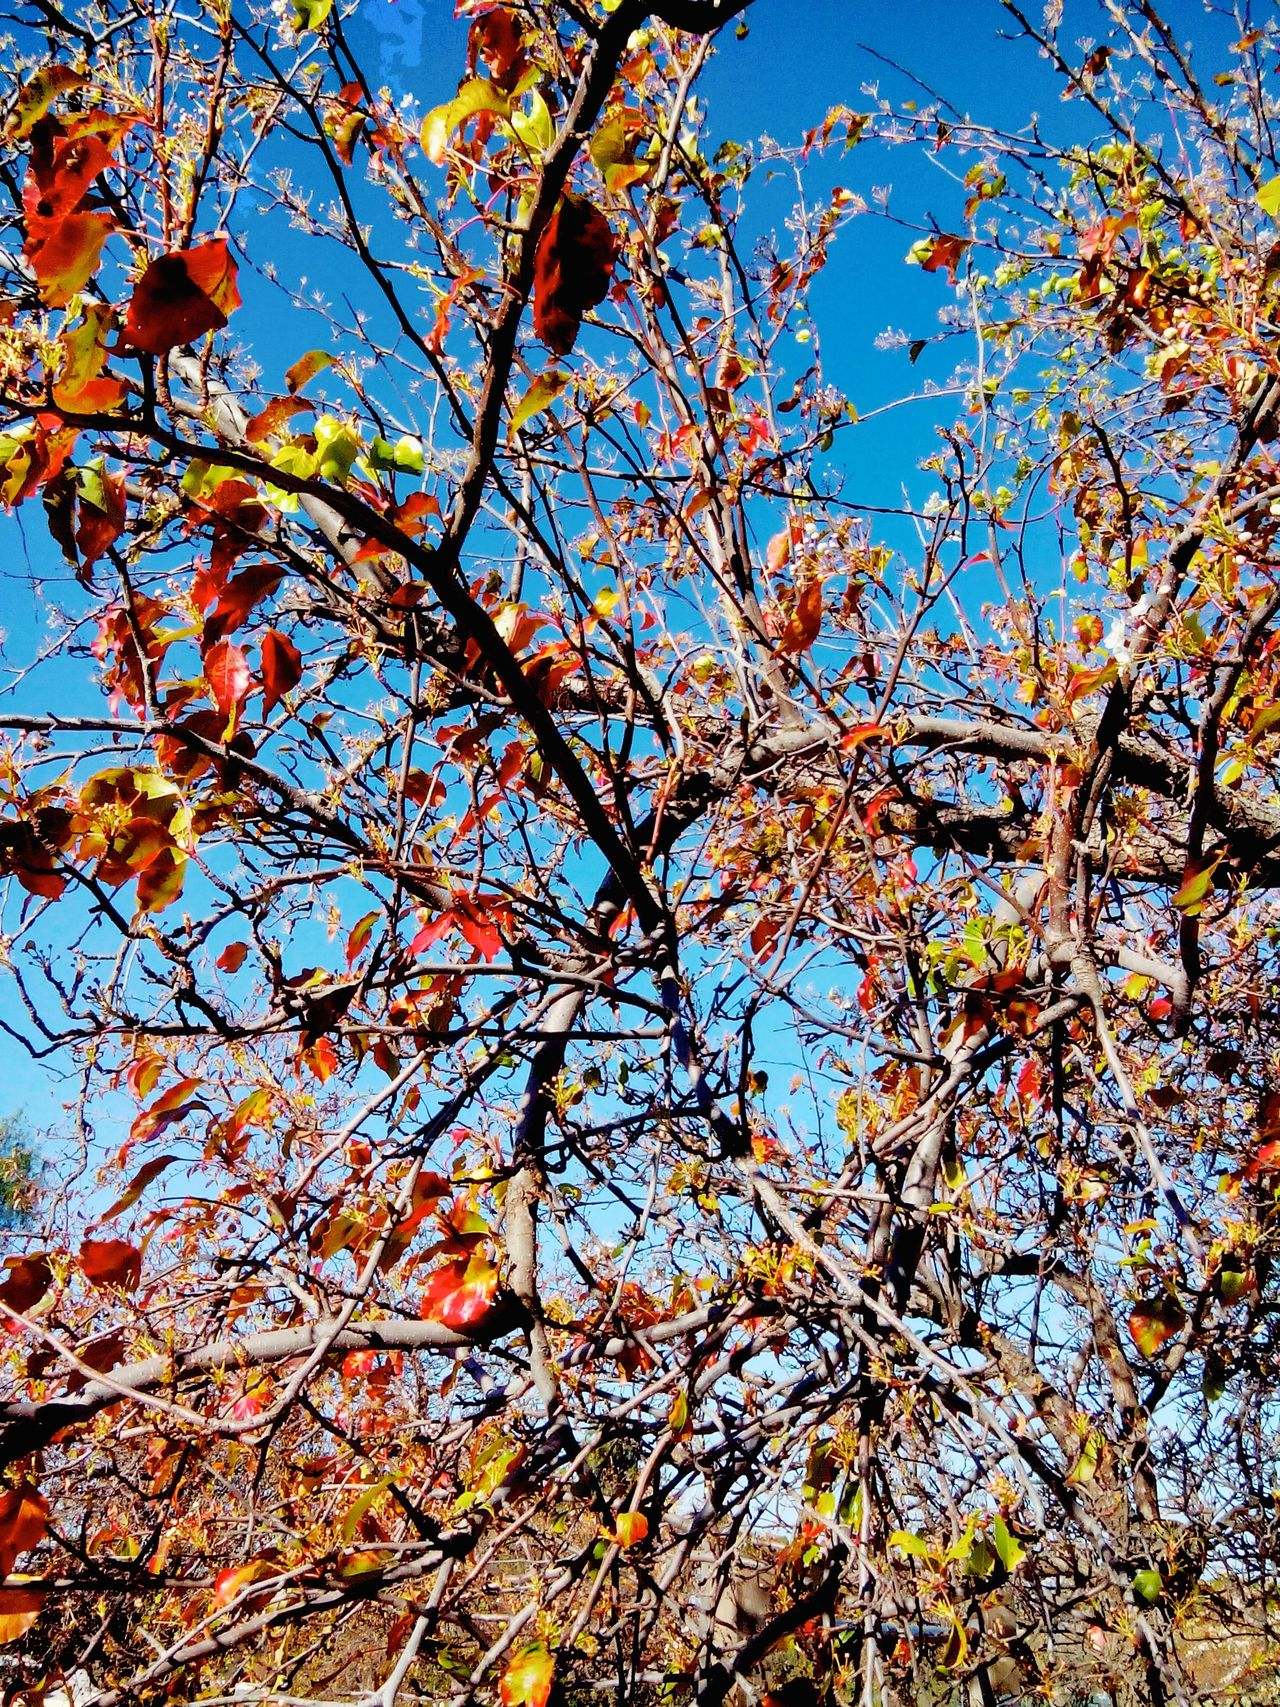 Autumn🍁🍁🍁 Beauty In Nature Branch Branches Branches And Leaves Clear Sky Day Daylight Freshness Growth Low Angle View Nature Nature Photography No People 😇😇😇 Outdoors Tree